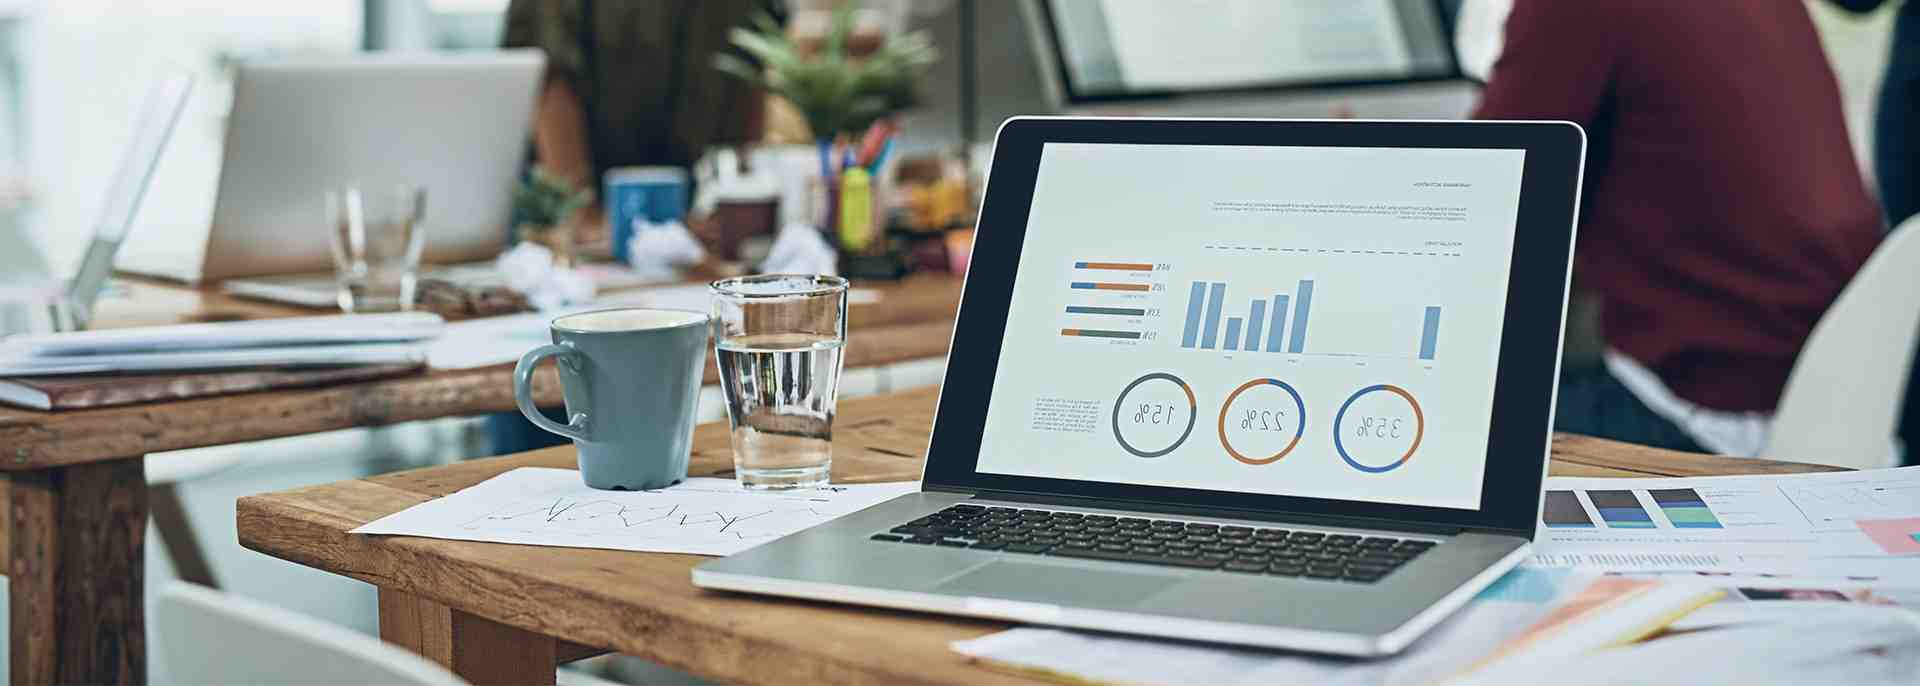 What is business intelligence in simple terms?